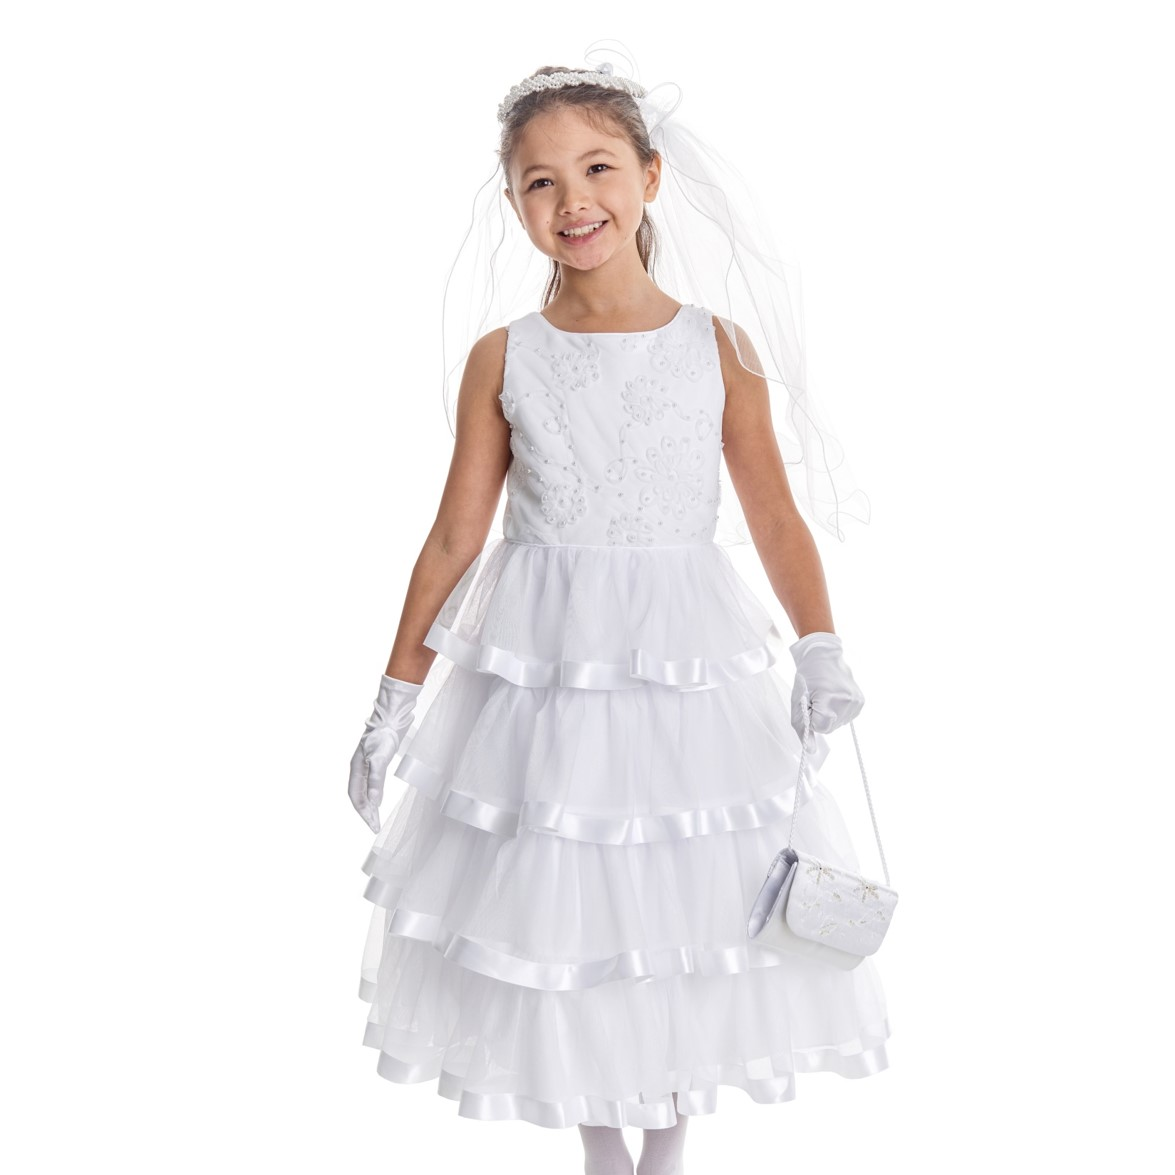 embroidered pearl first communion dress